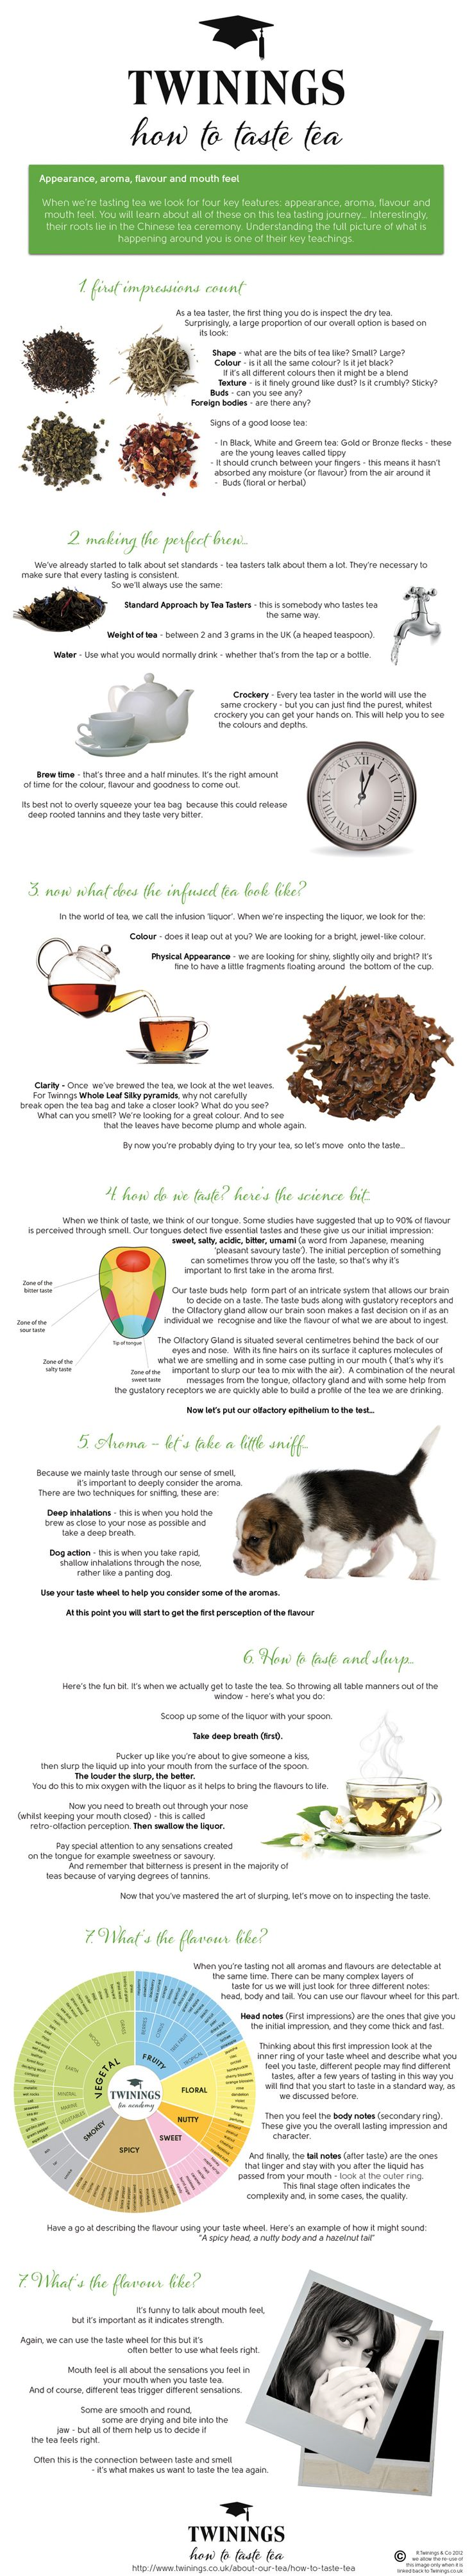 """How to Taste Tea"" [INFOGRAPHIC]"